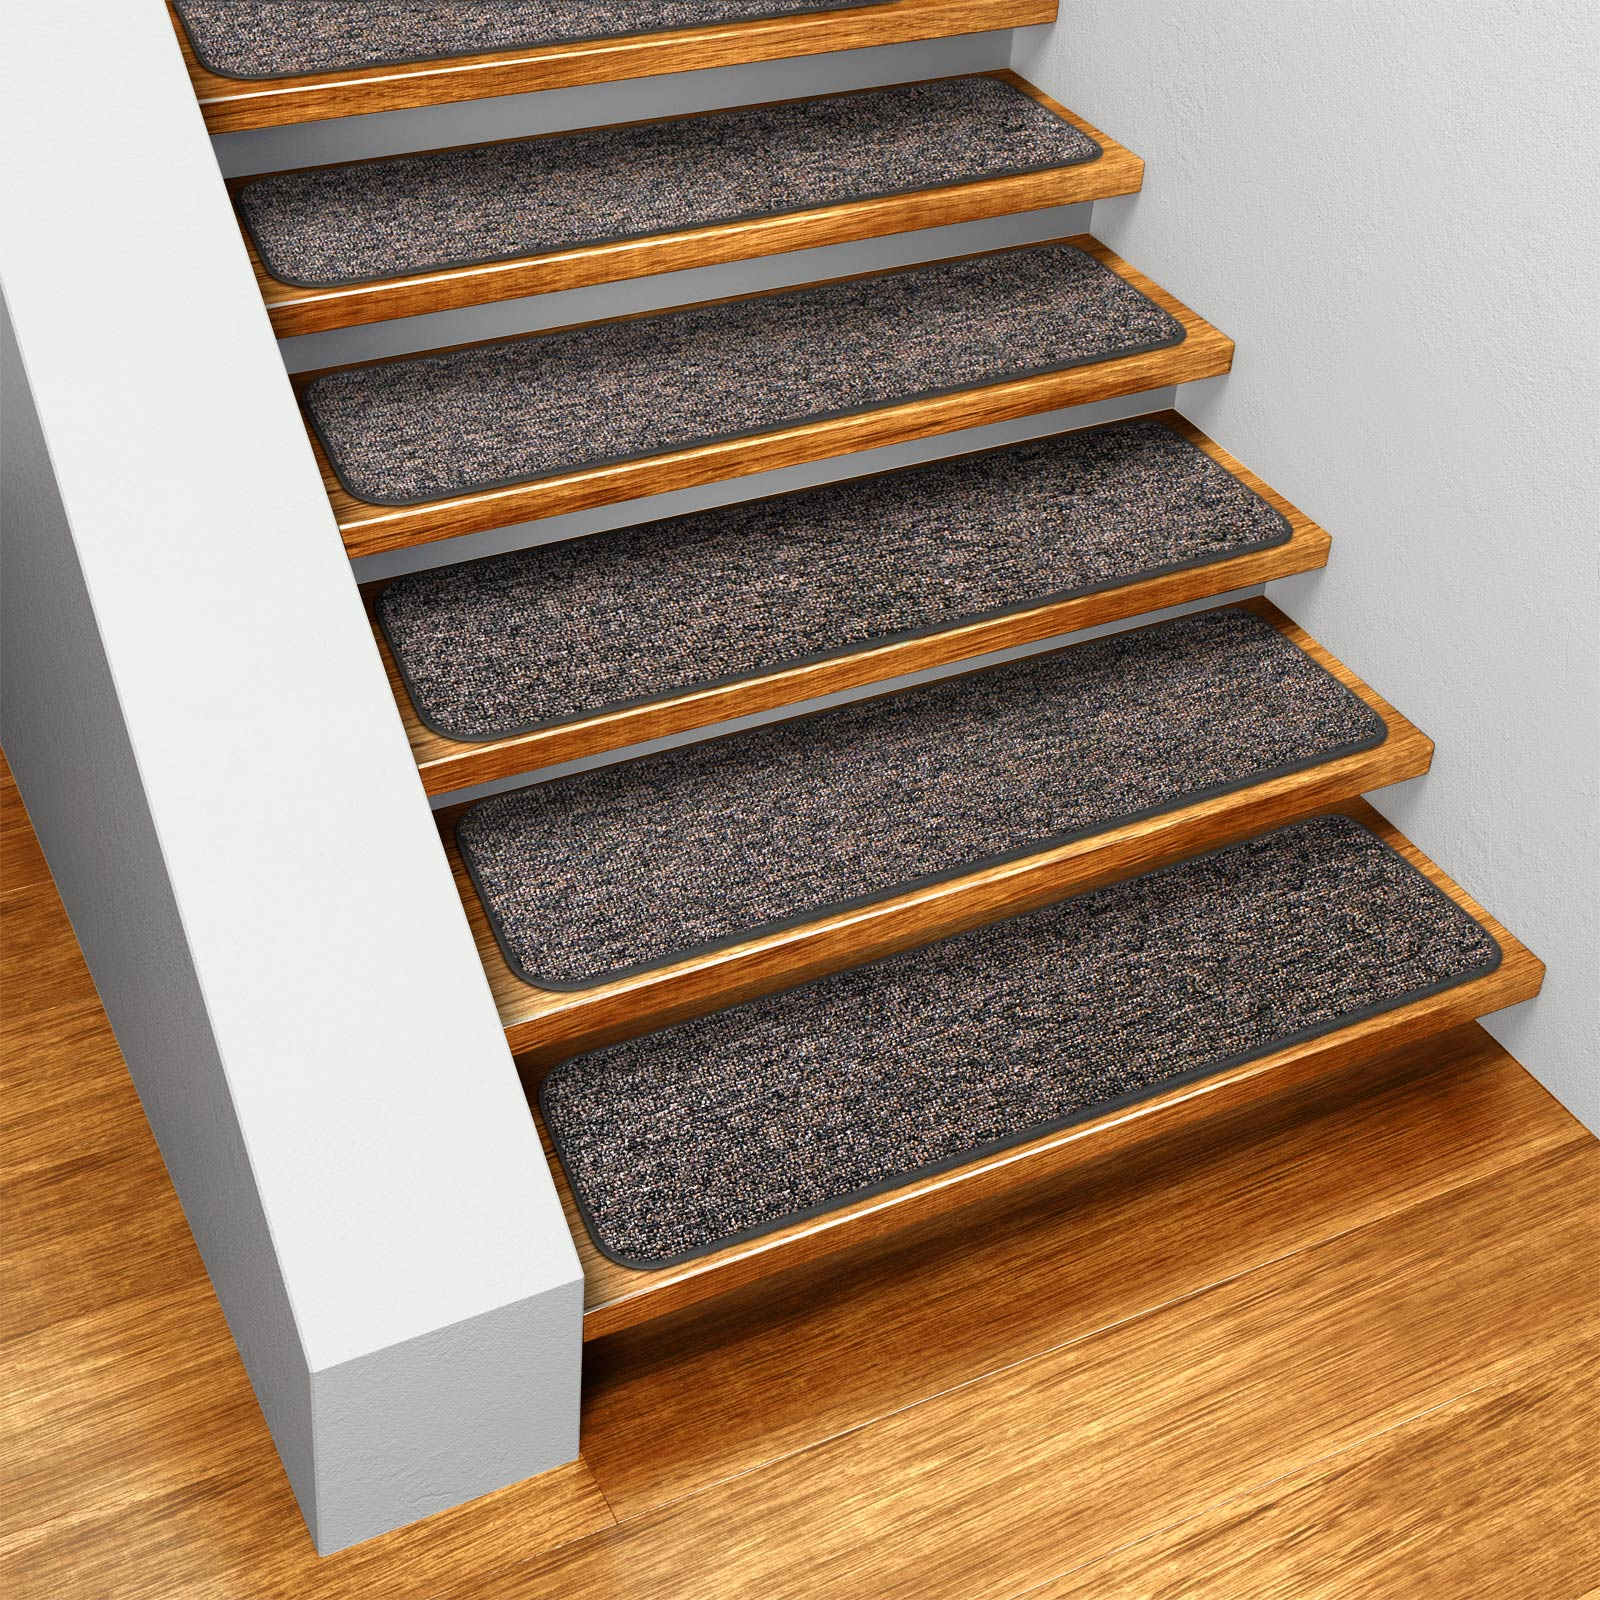 House, Home and More Set of 15 Skid-resistant Indoor Carpet Stair Treads - Pebble Gray - 8 In. X 30 In. at Sears.com